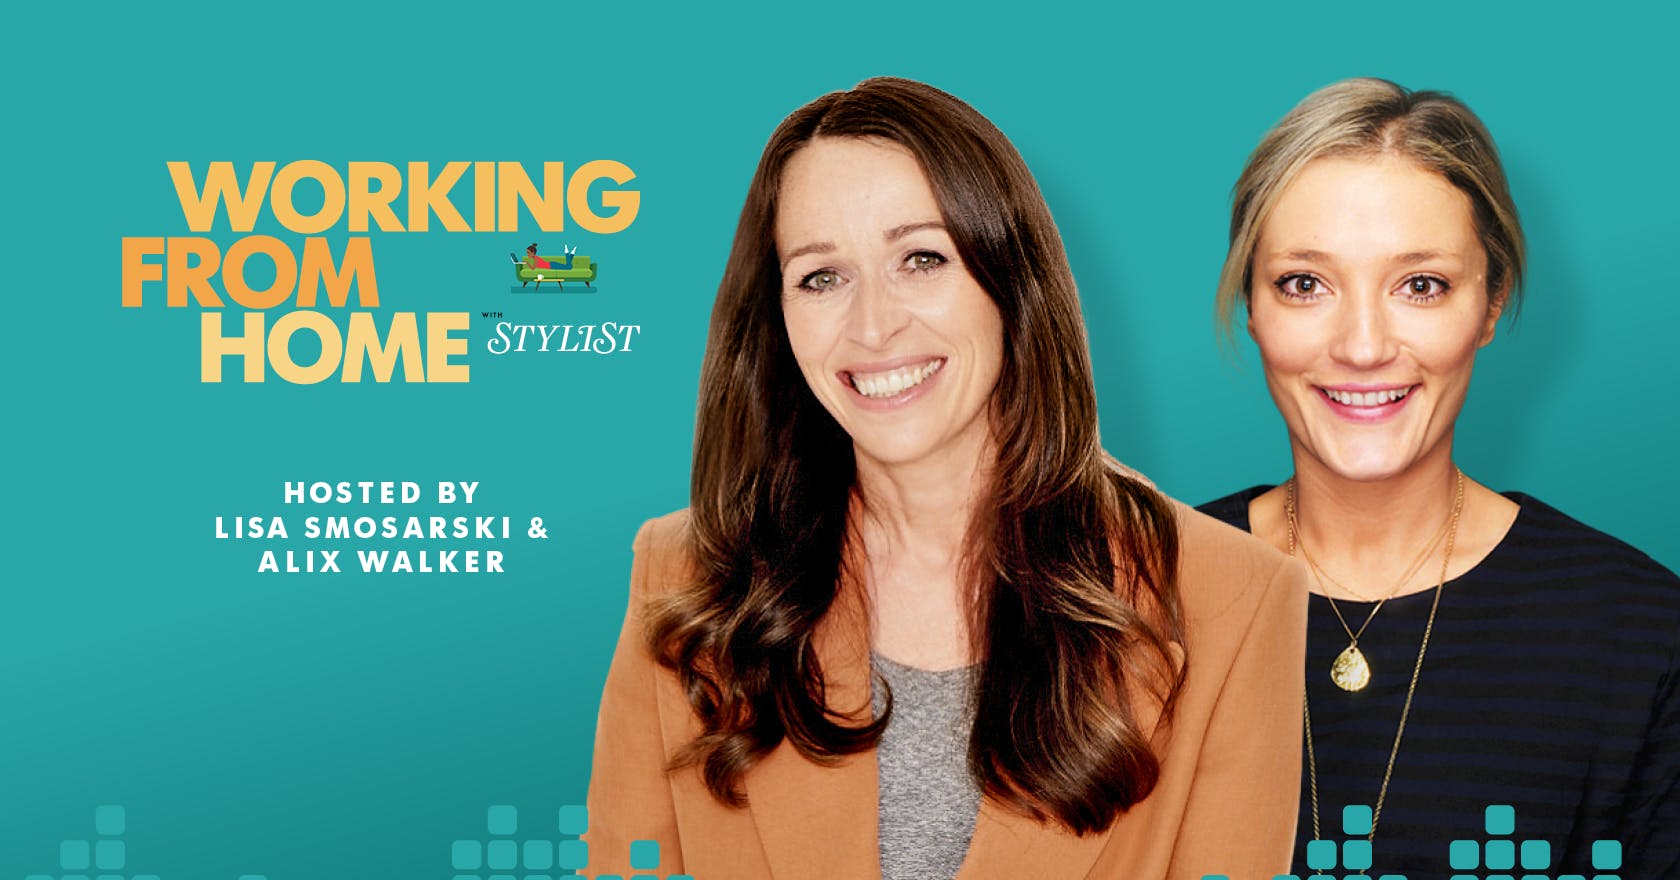 The Working from home with Stylist podcast is finally here